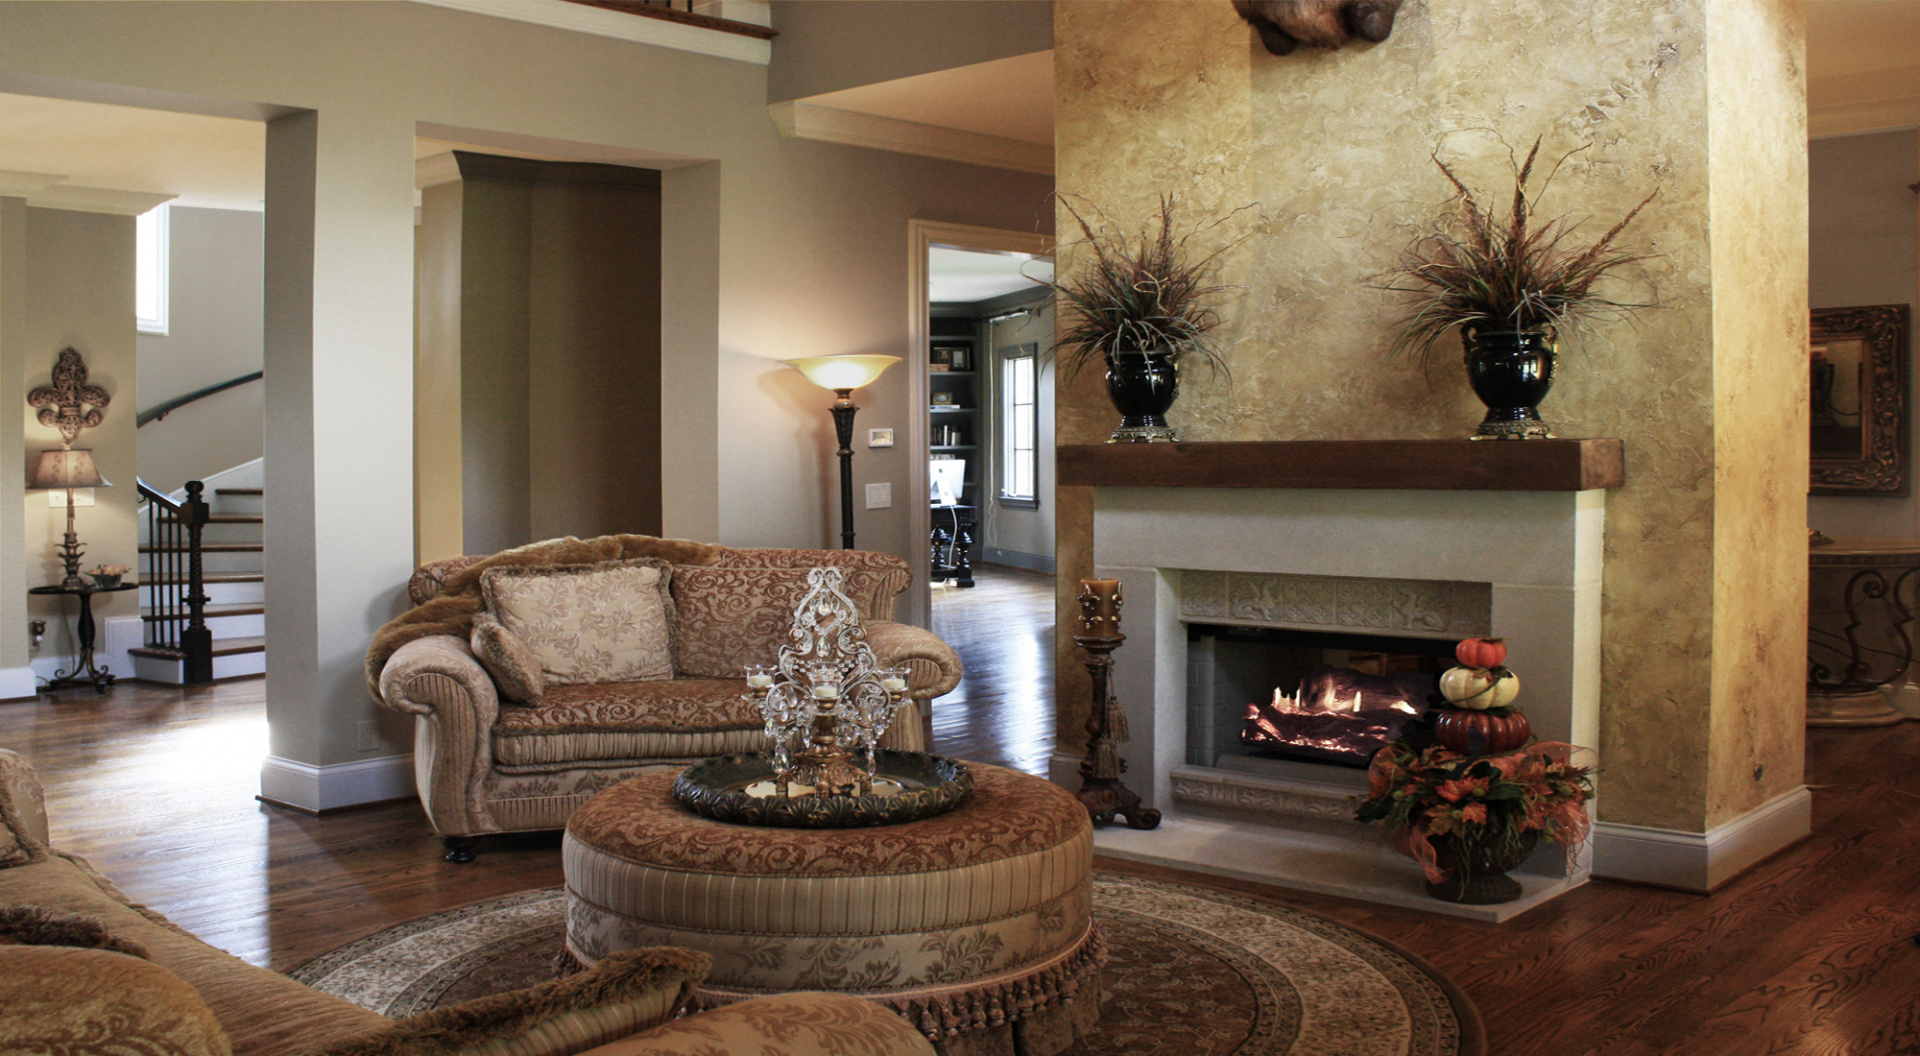 Custom great room wall color with a rustic faux plaster feature wall and faux wood ceiling beams.